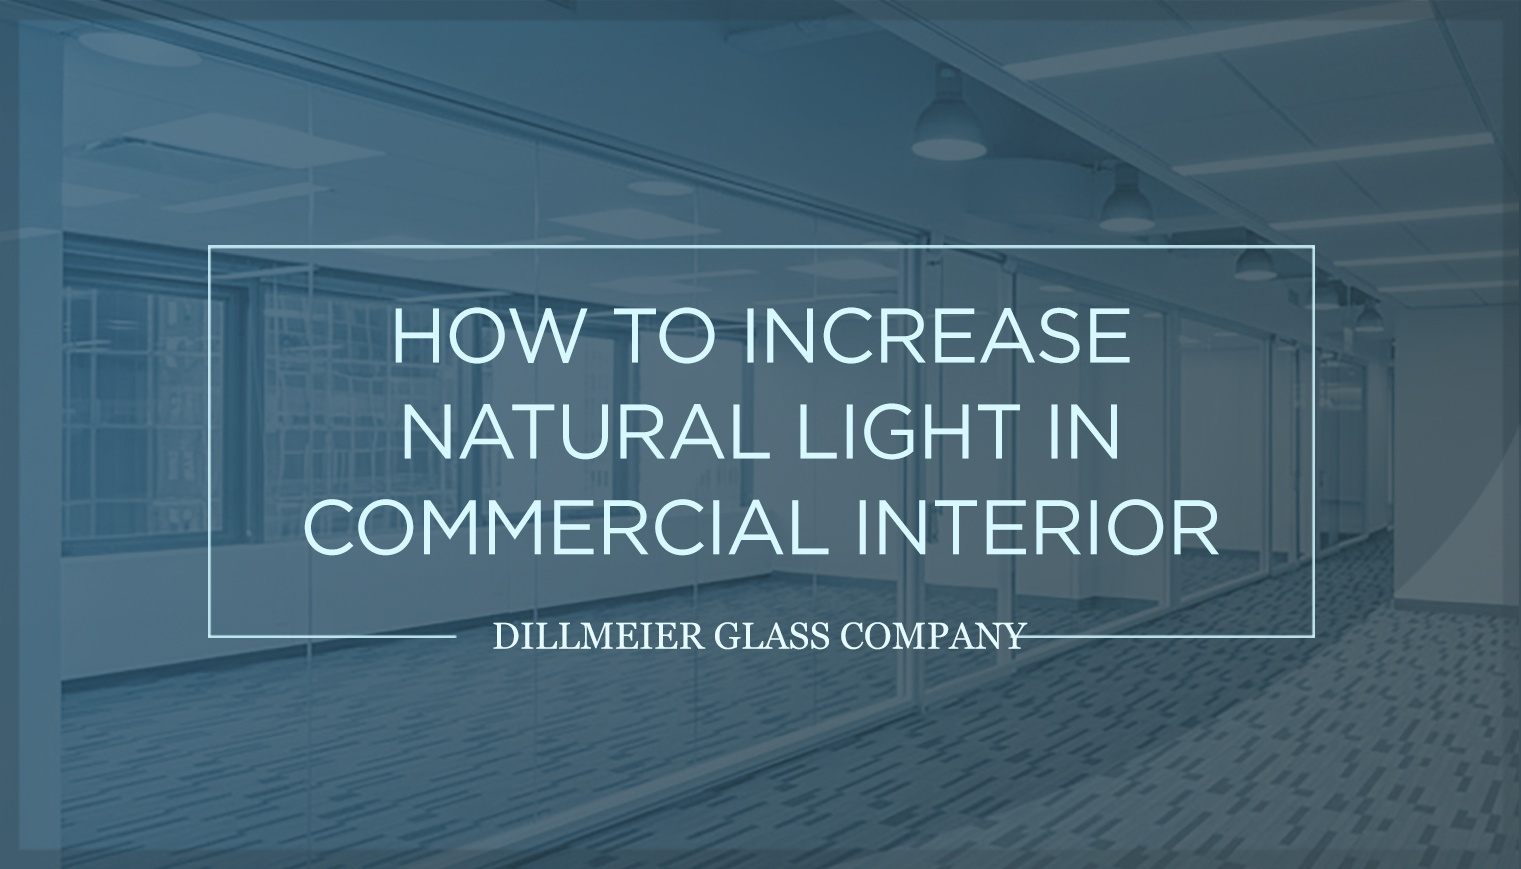 How to Increase Natural Light in Commercial Interiors